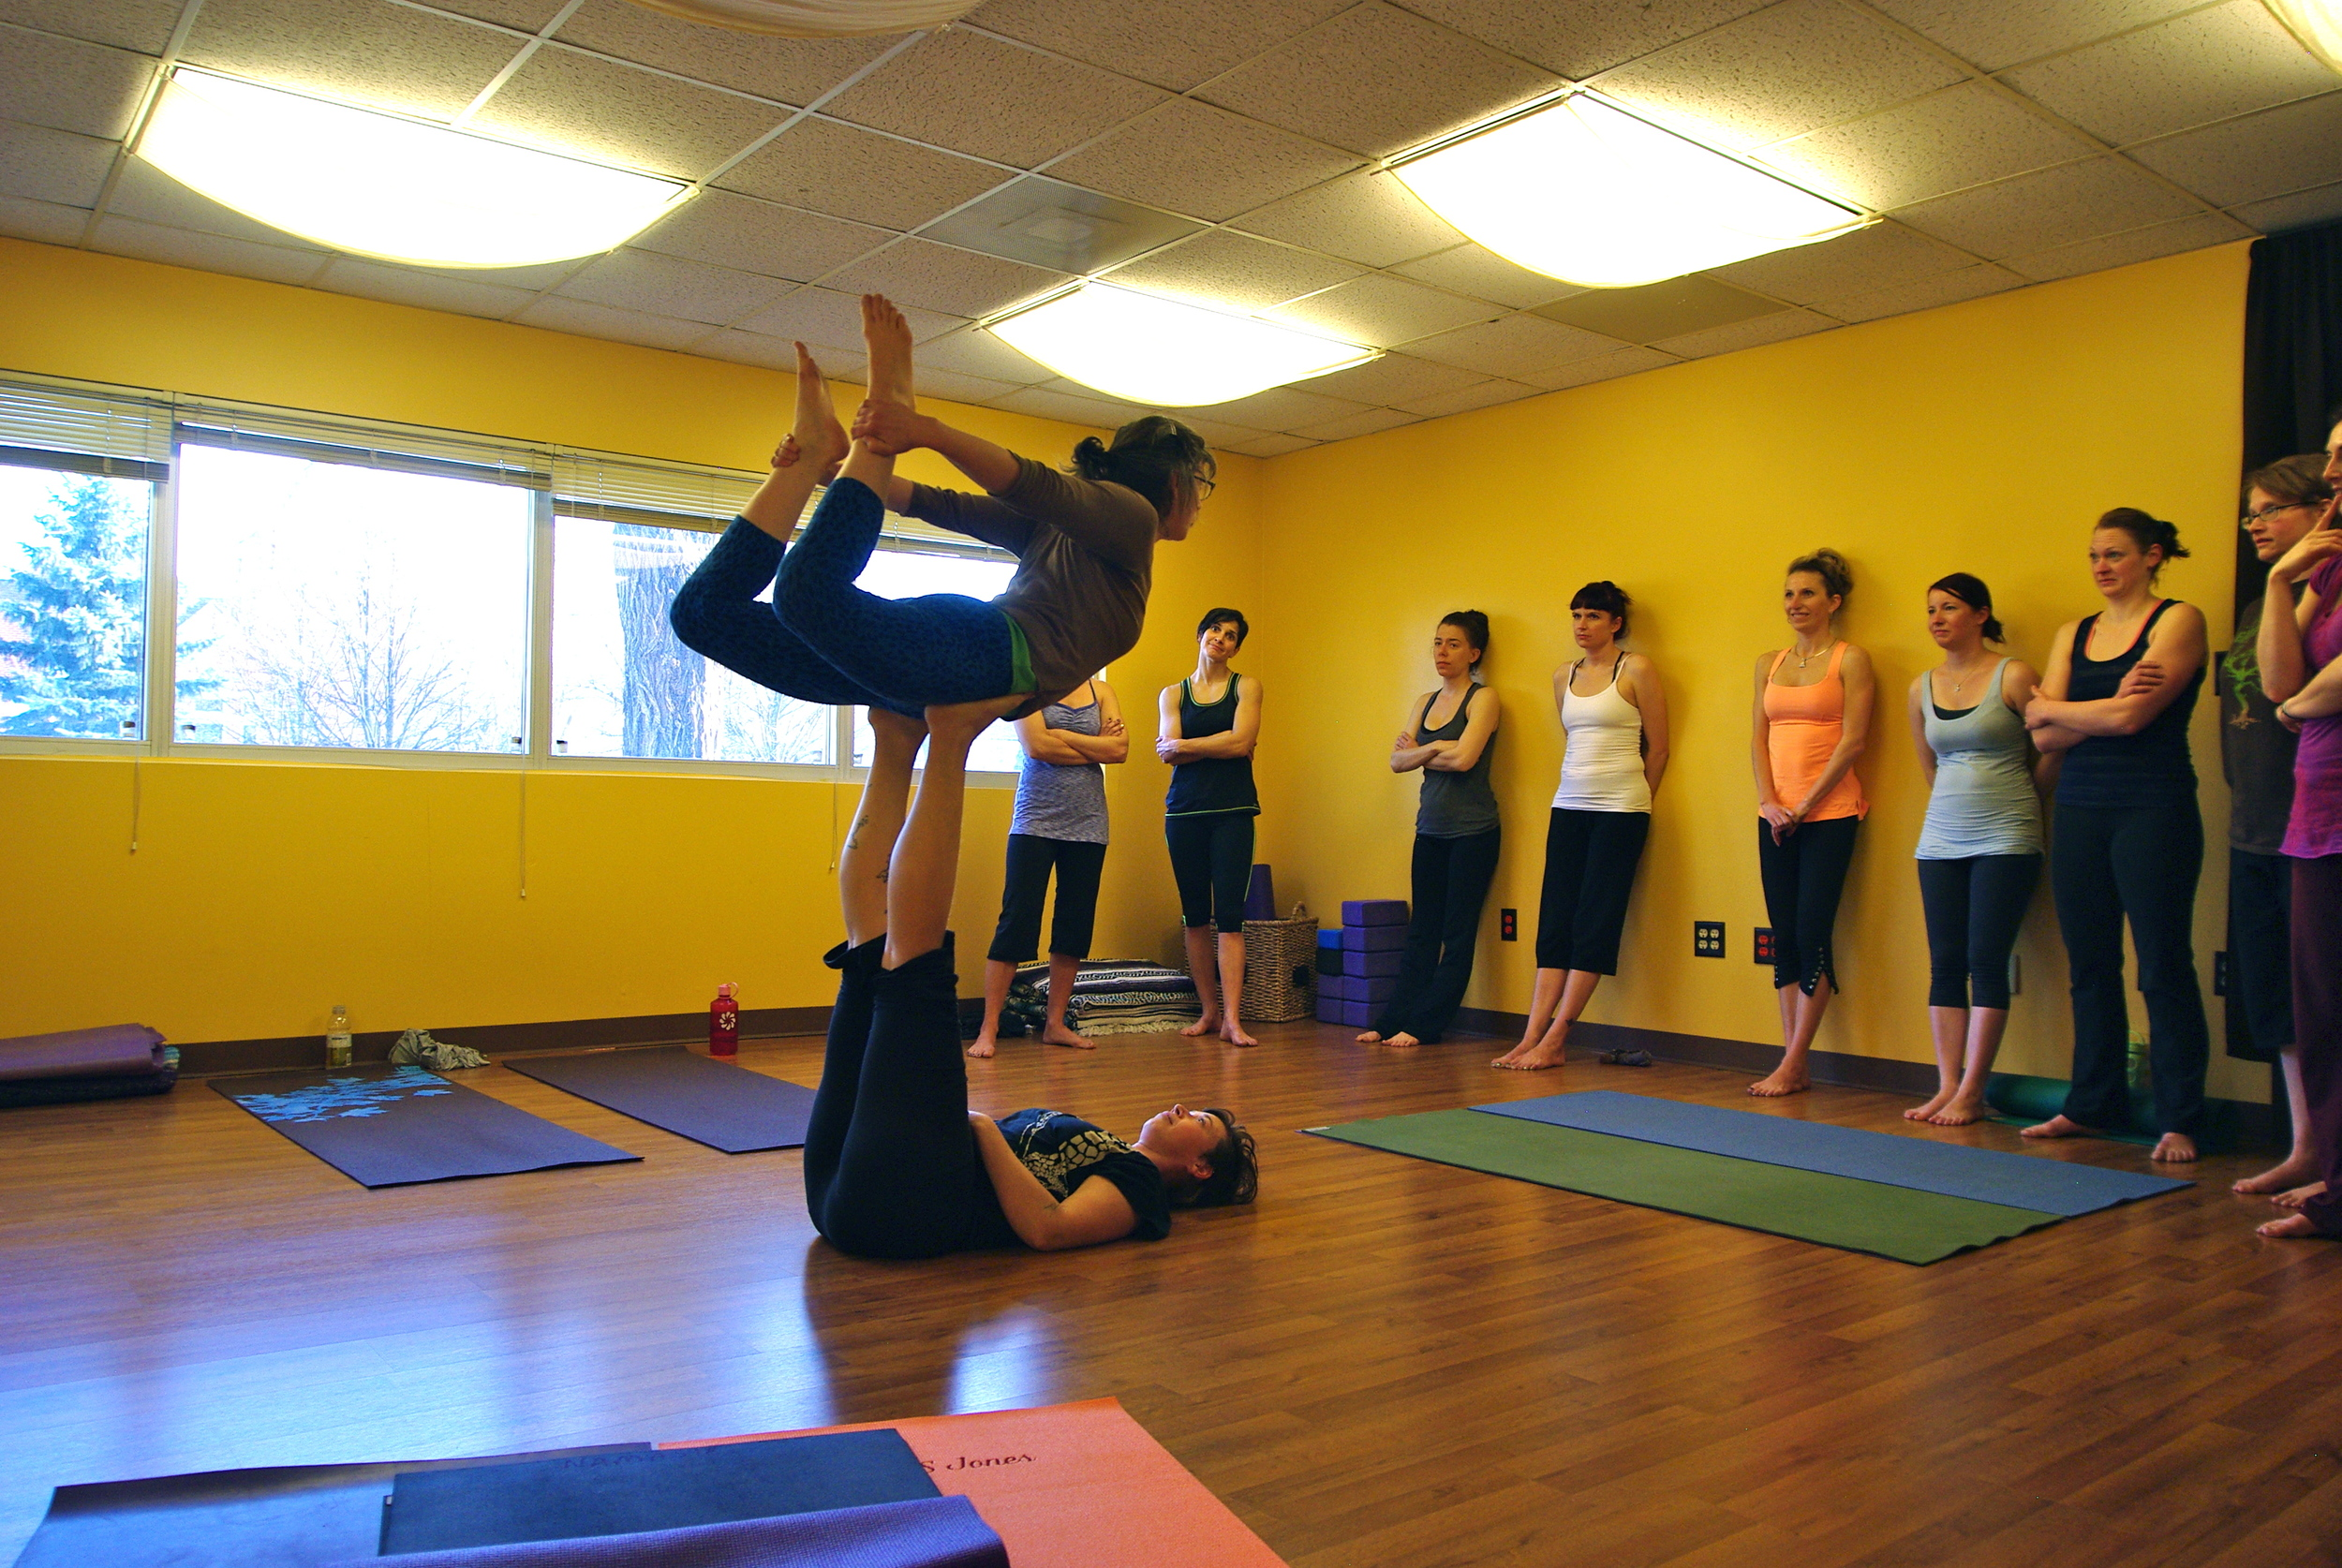 "Acro Yoga AcroYoga MPLS Twin Cities Twincities Minneapolis Minnesota MN mn mpls twincities twincities acroyoga acro yoga minneapolis, south minneapolis, minnesota acro yoga, acroyoga minnesota, ""acroyoga mn"", ""acro yoga mn"" ""acroyoga minnesota"" ""acro yoga minnesota"" ""acro yoga twin cities"""